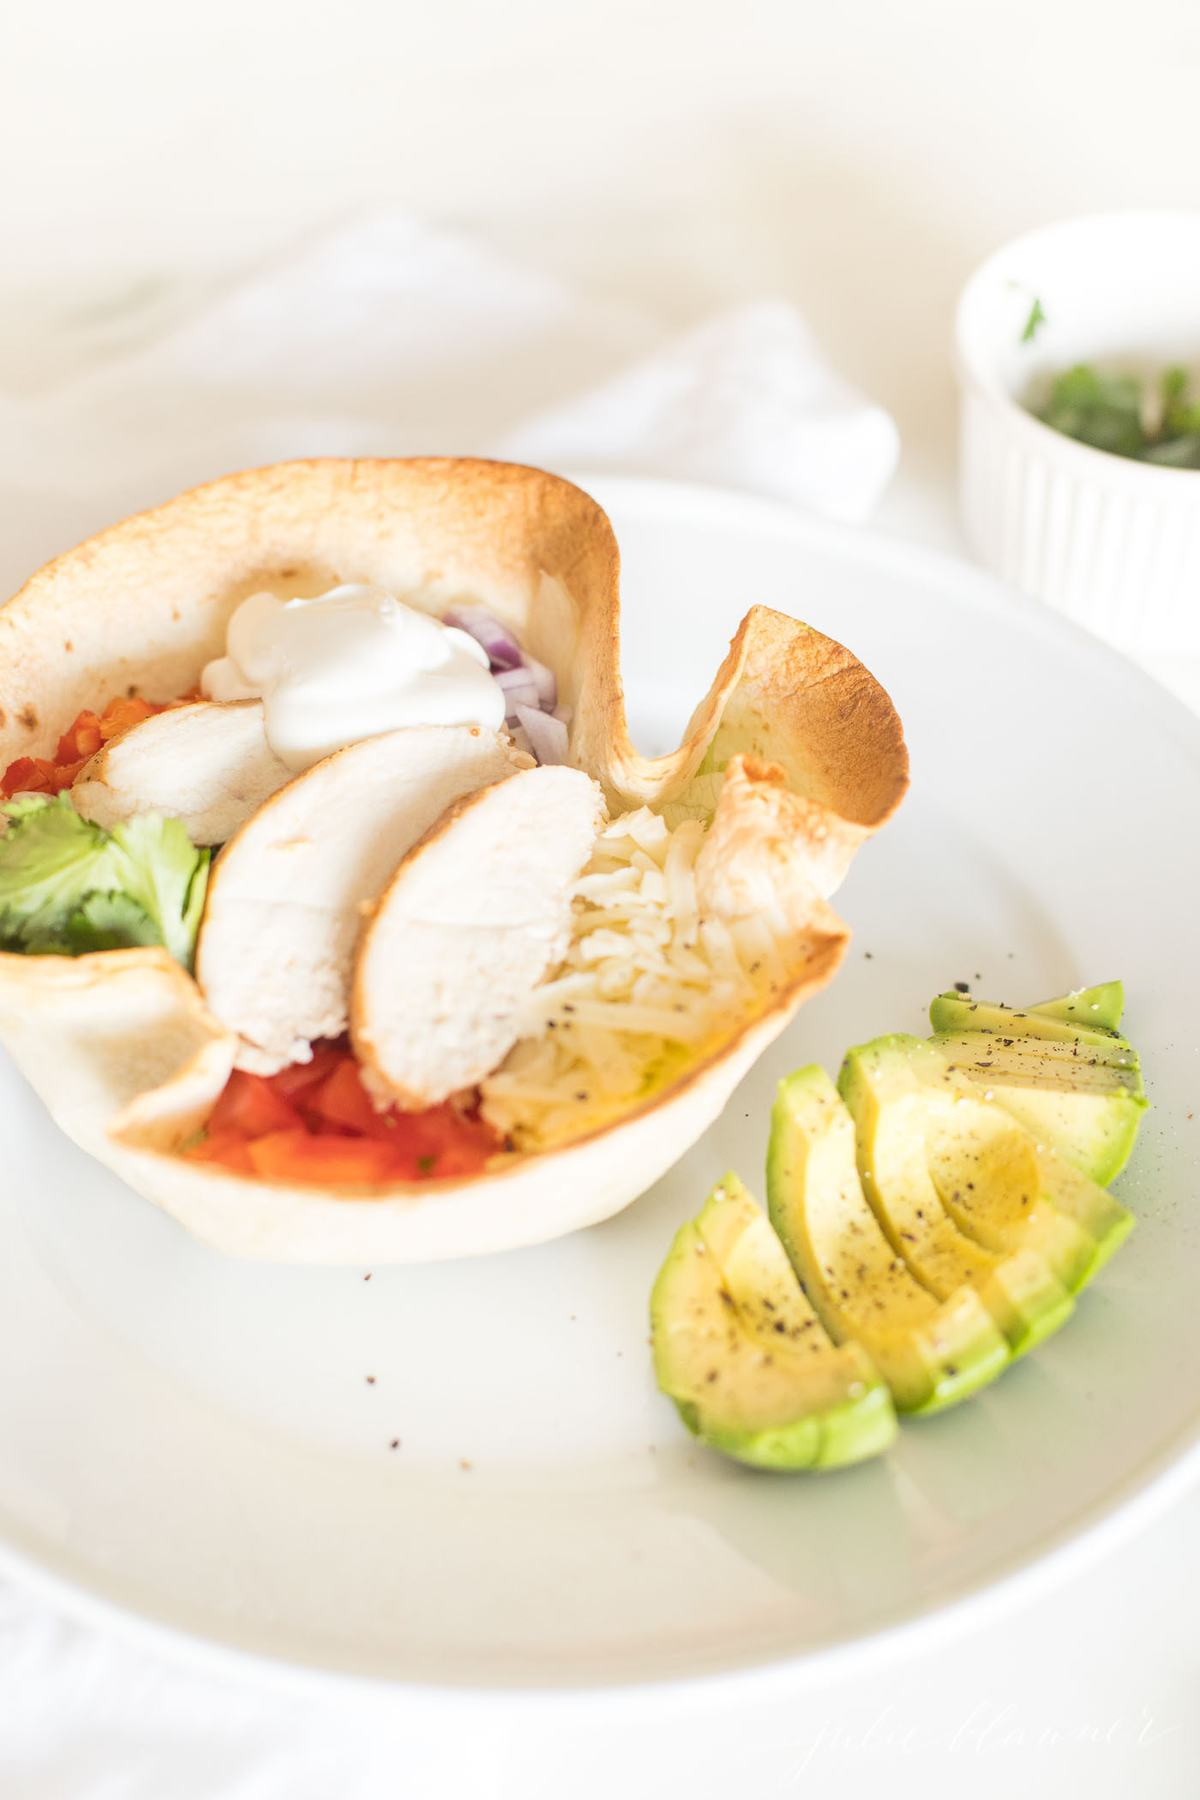 A tortilla bowl full of chicken, cheese, lettuce and more, on a white plate